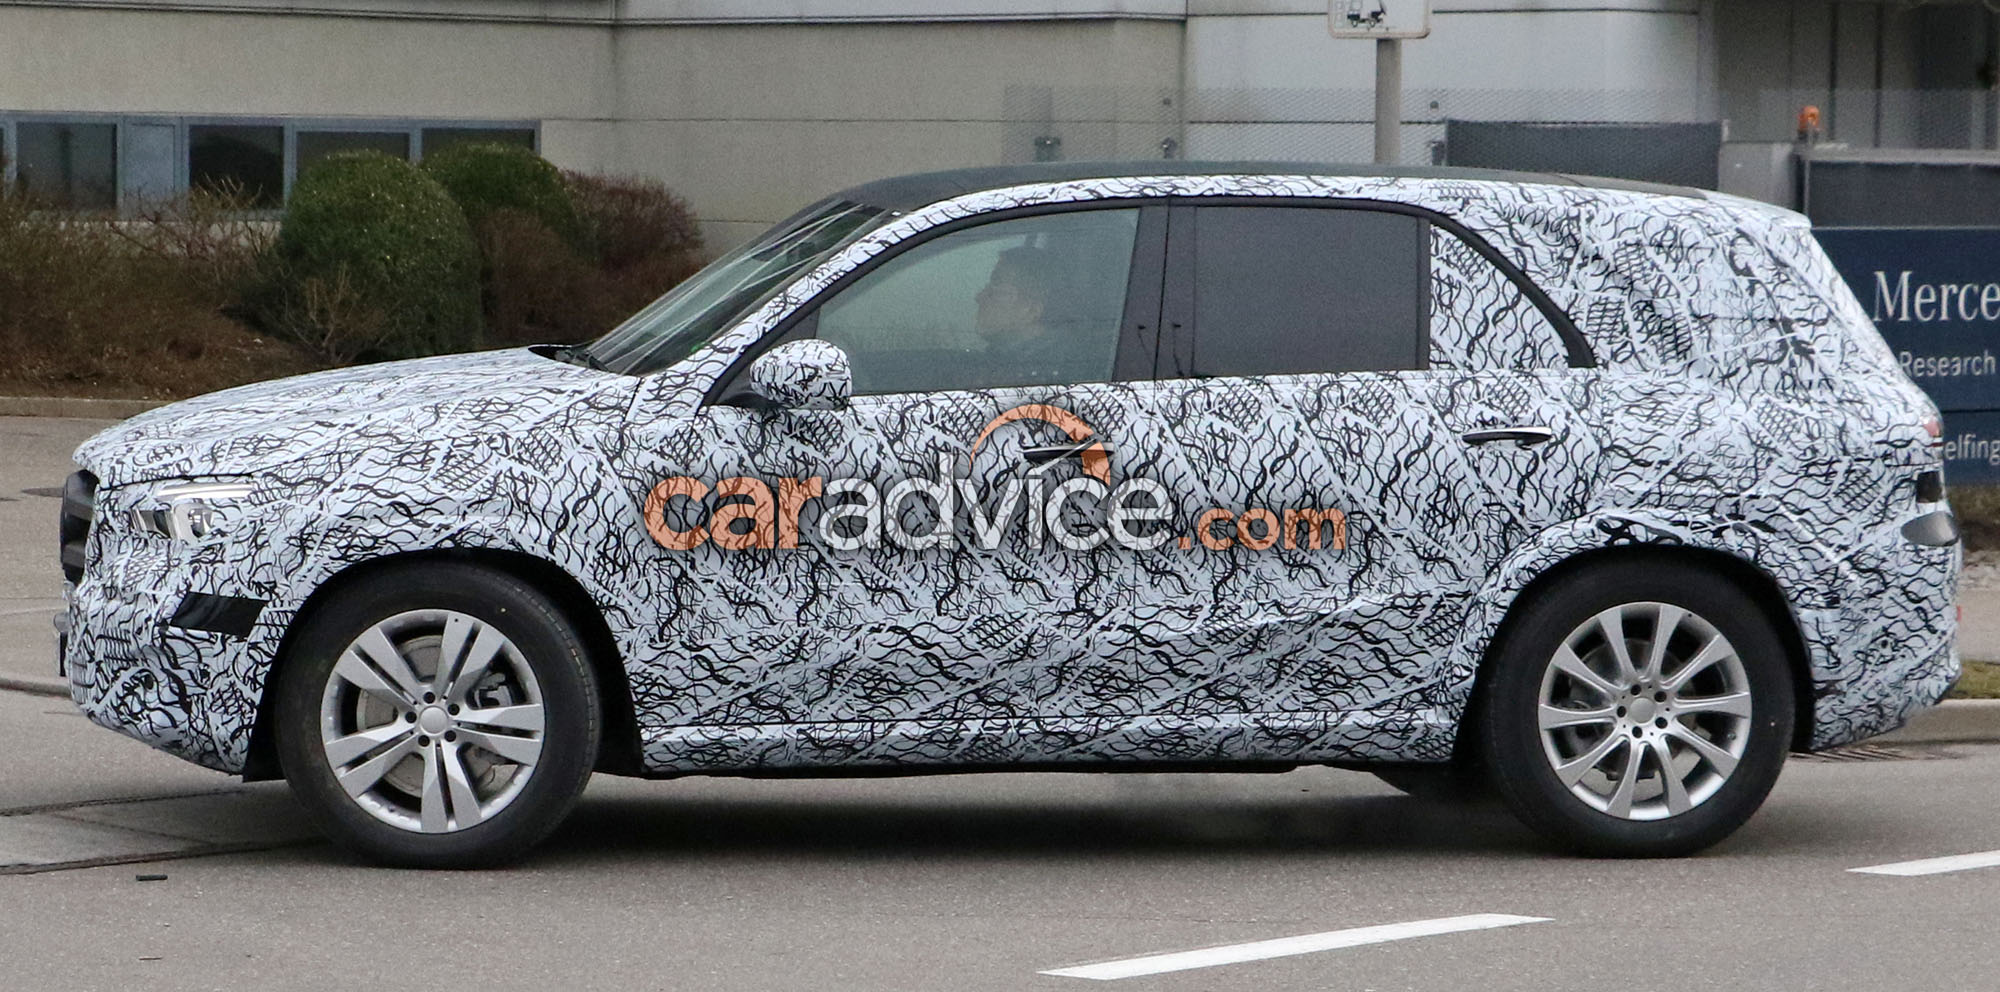 2018 mercedes benz gle spied inside and out photos 1 of 4 for 2018 mercedes benz gle